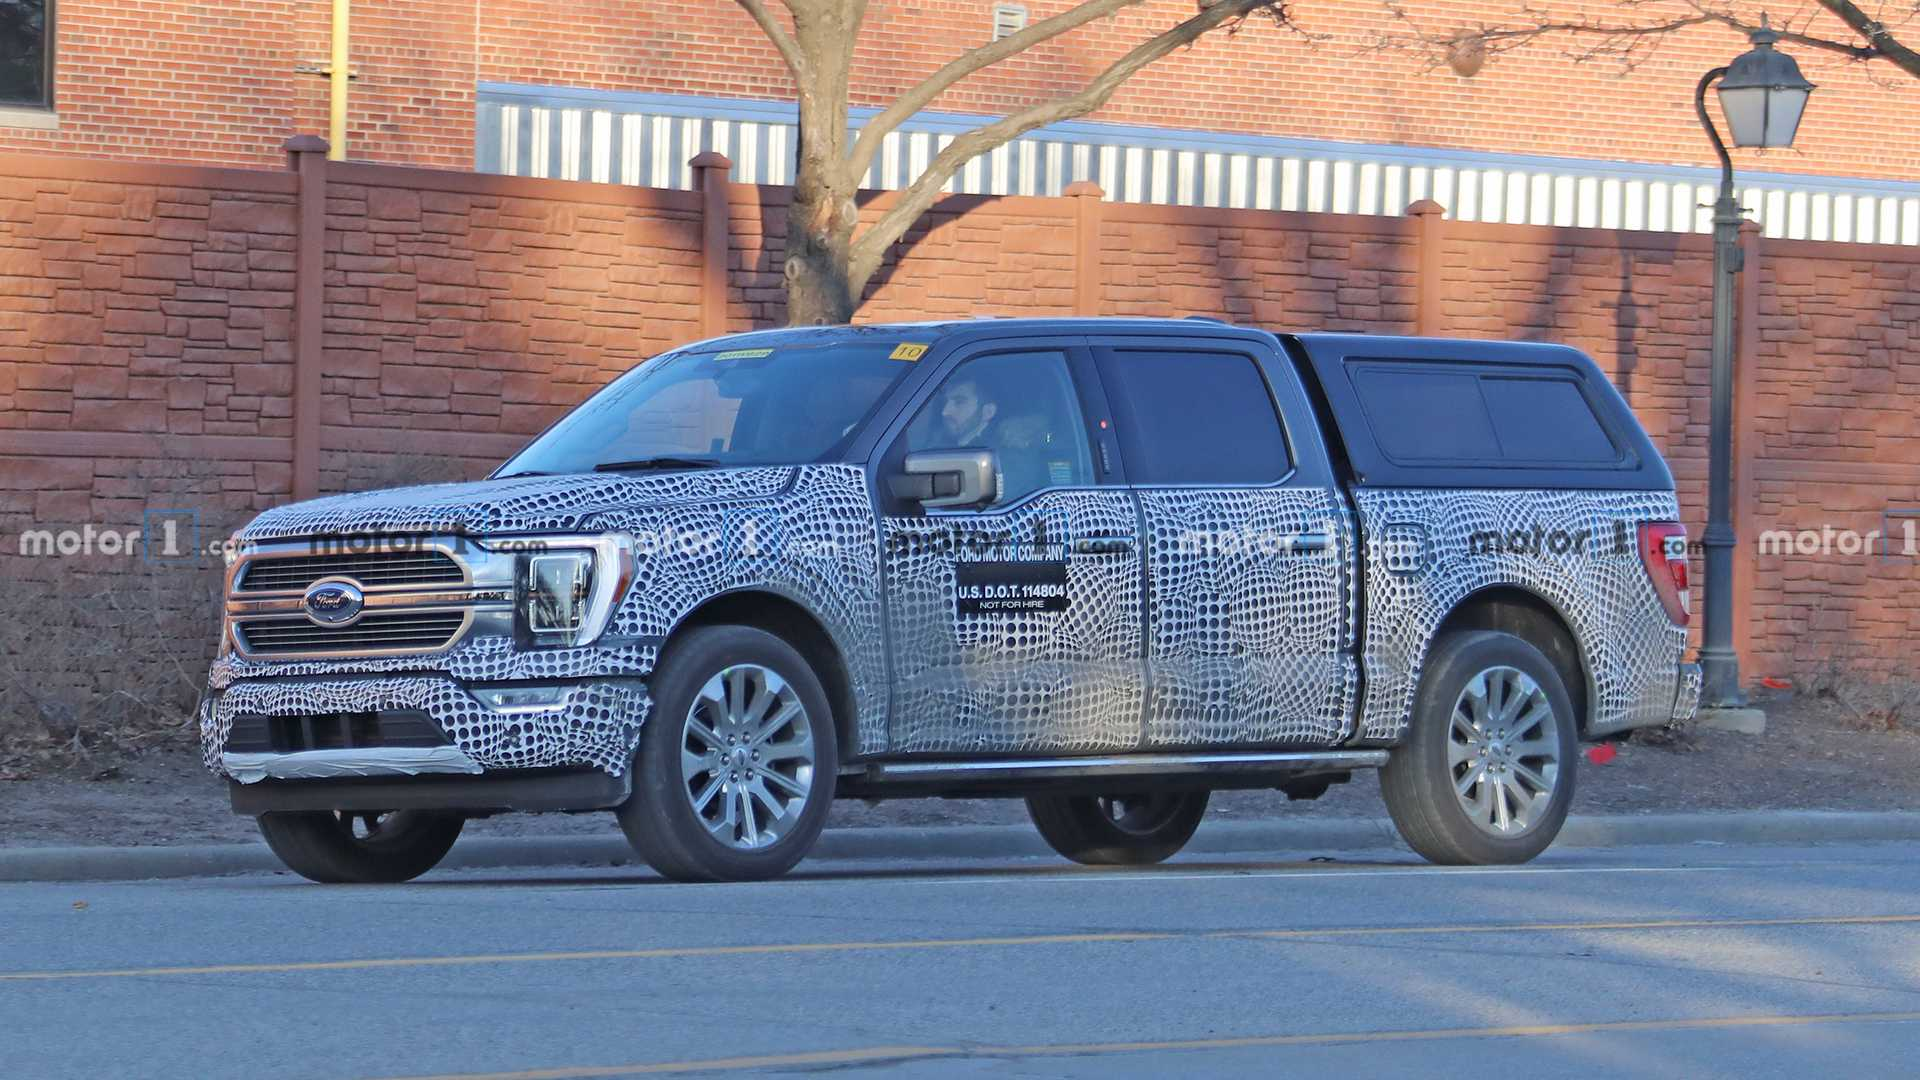 2021 ford f150 interior to get nicer materials 155inch